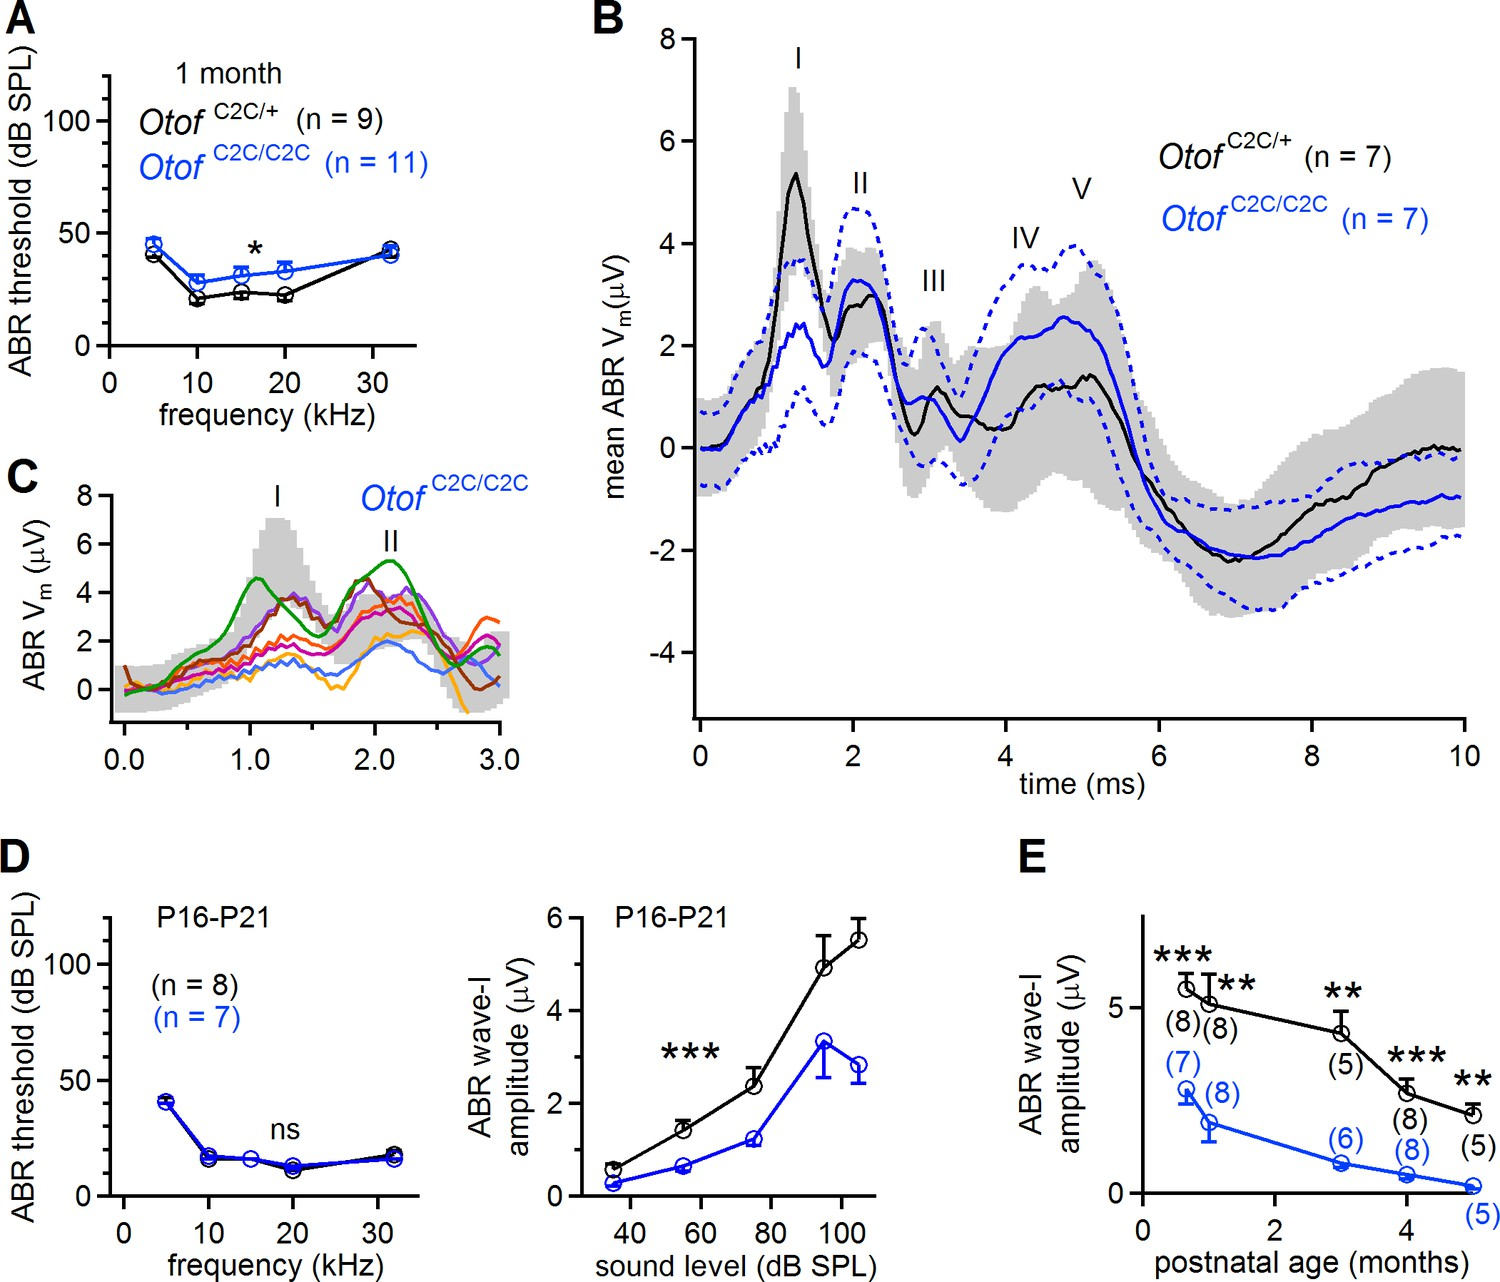 Otoferlin Acts As A Ca2 Sensor For Vesicle Fusion And Pool Op Amp Voltage Follower Saturation Electrical Engineering Stack Smaller Amplitude Of Abr Wave I In Otof C2c Mice